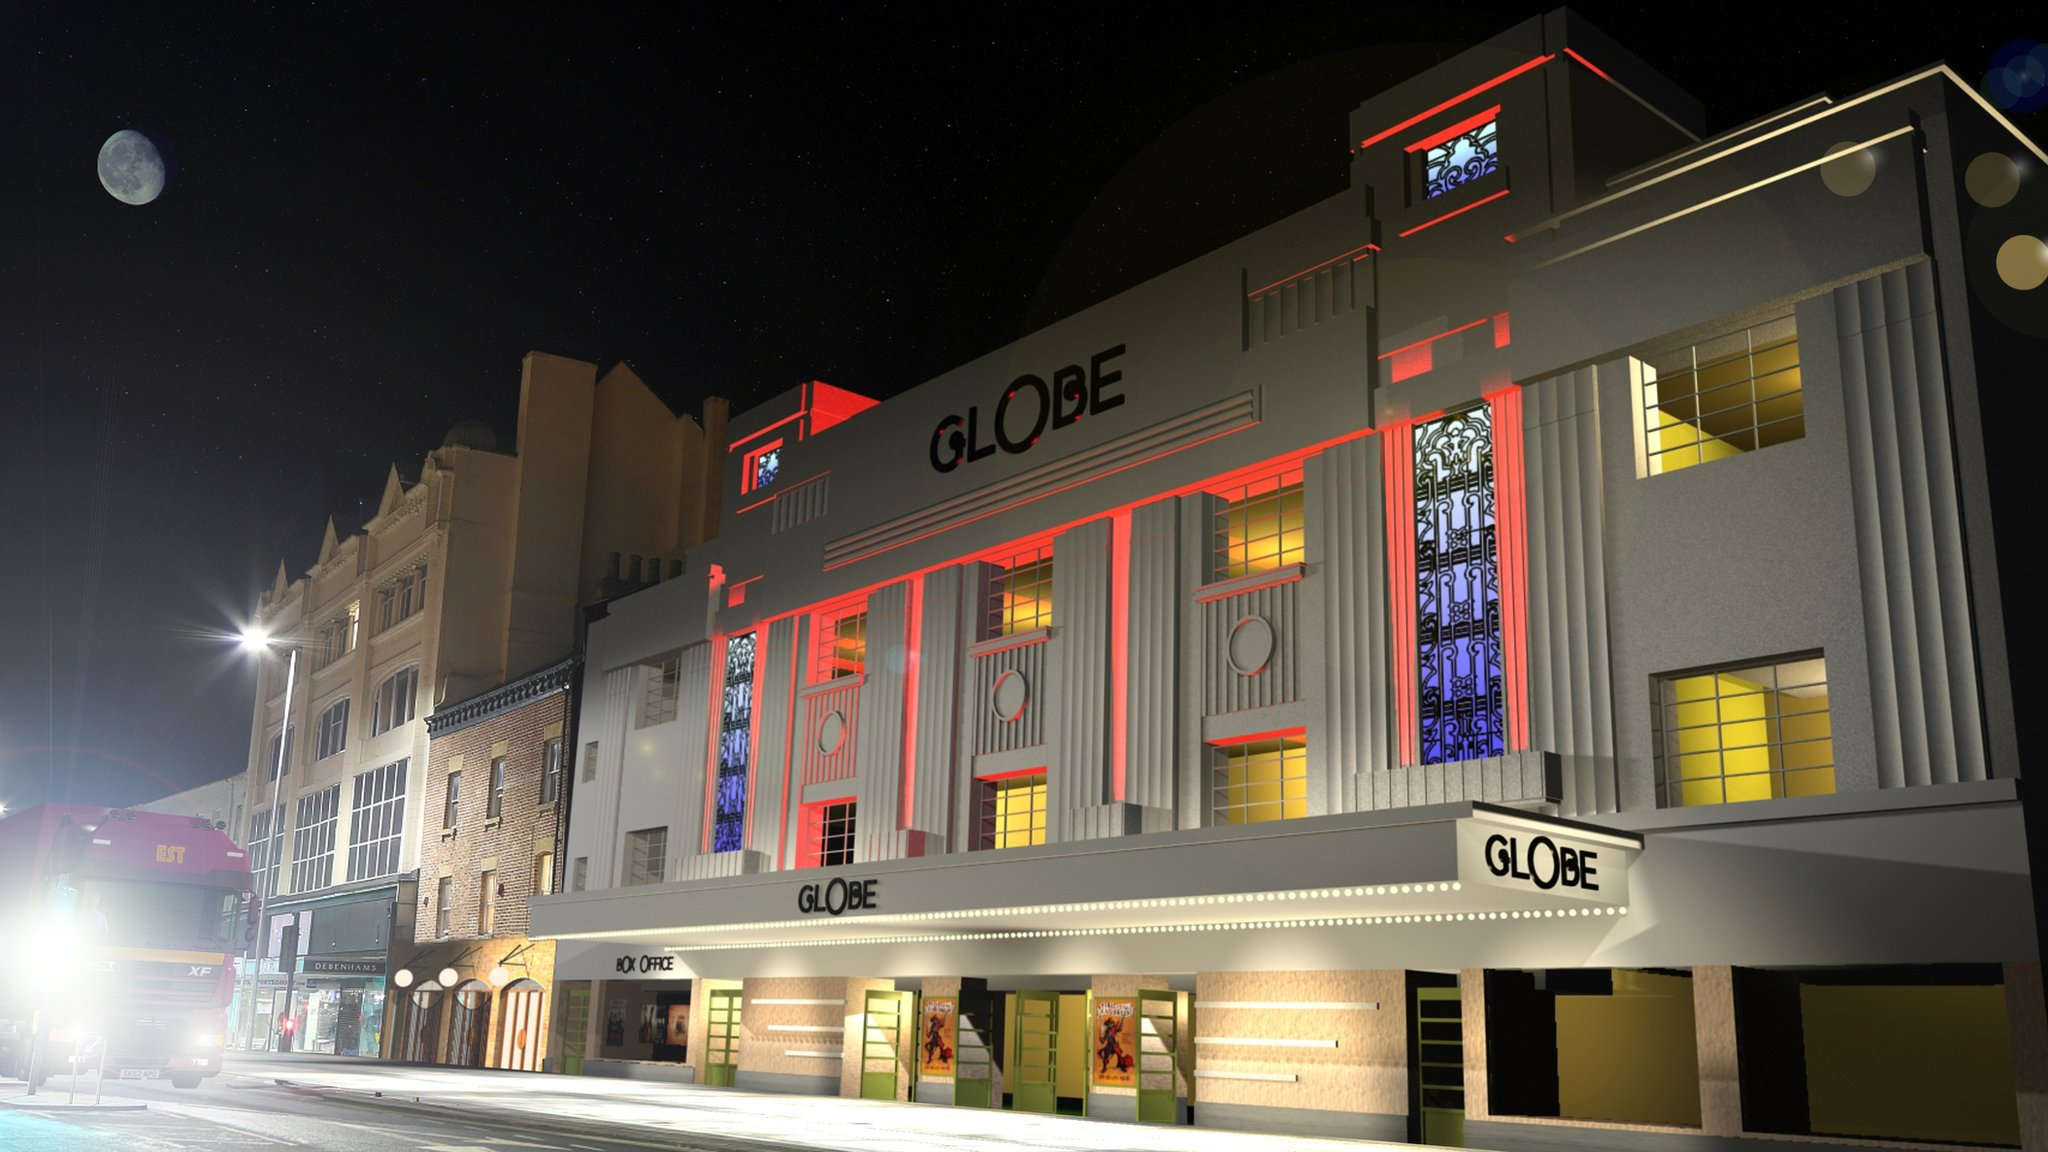 Structural woes delay Stockton Globe Theatre revamp